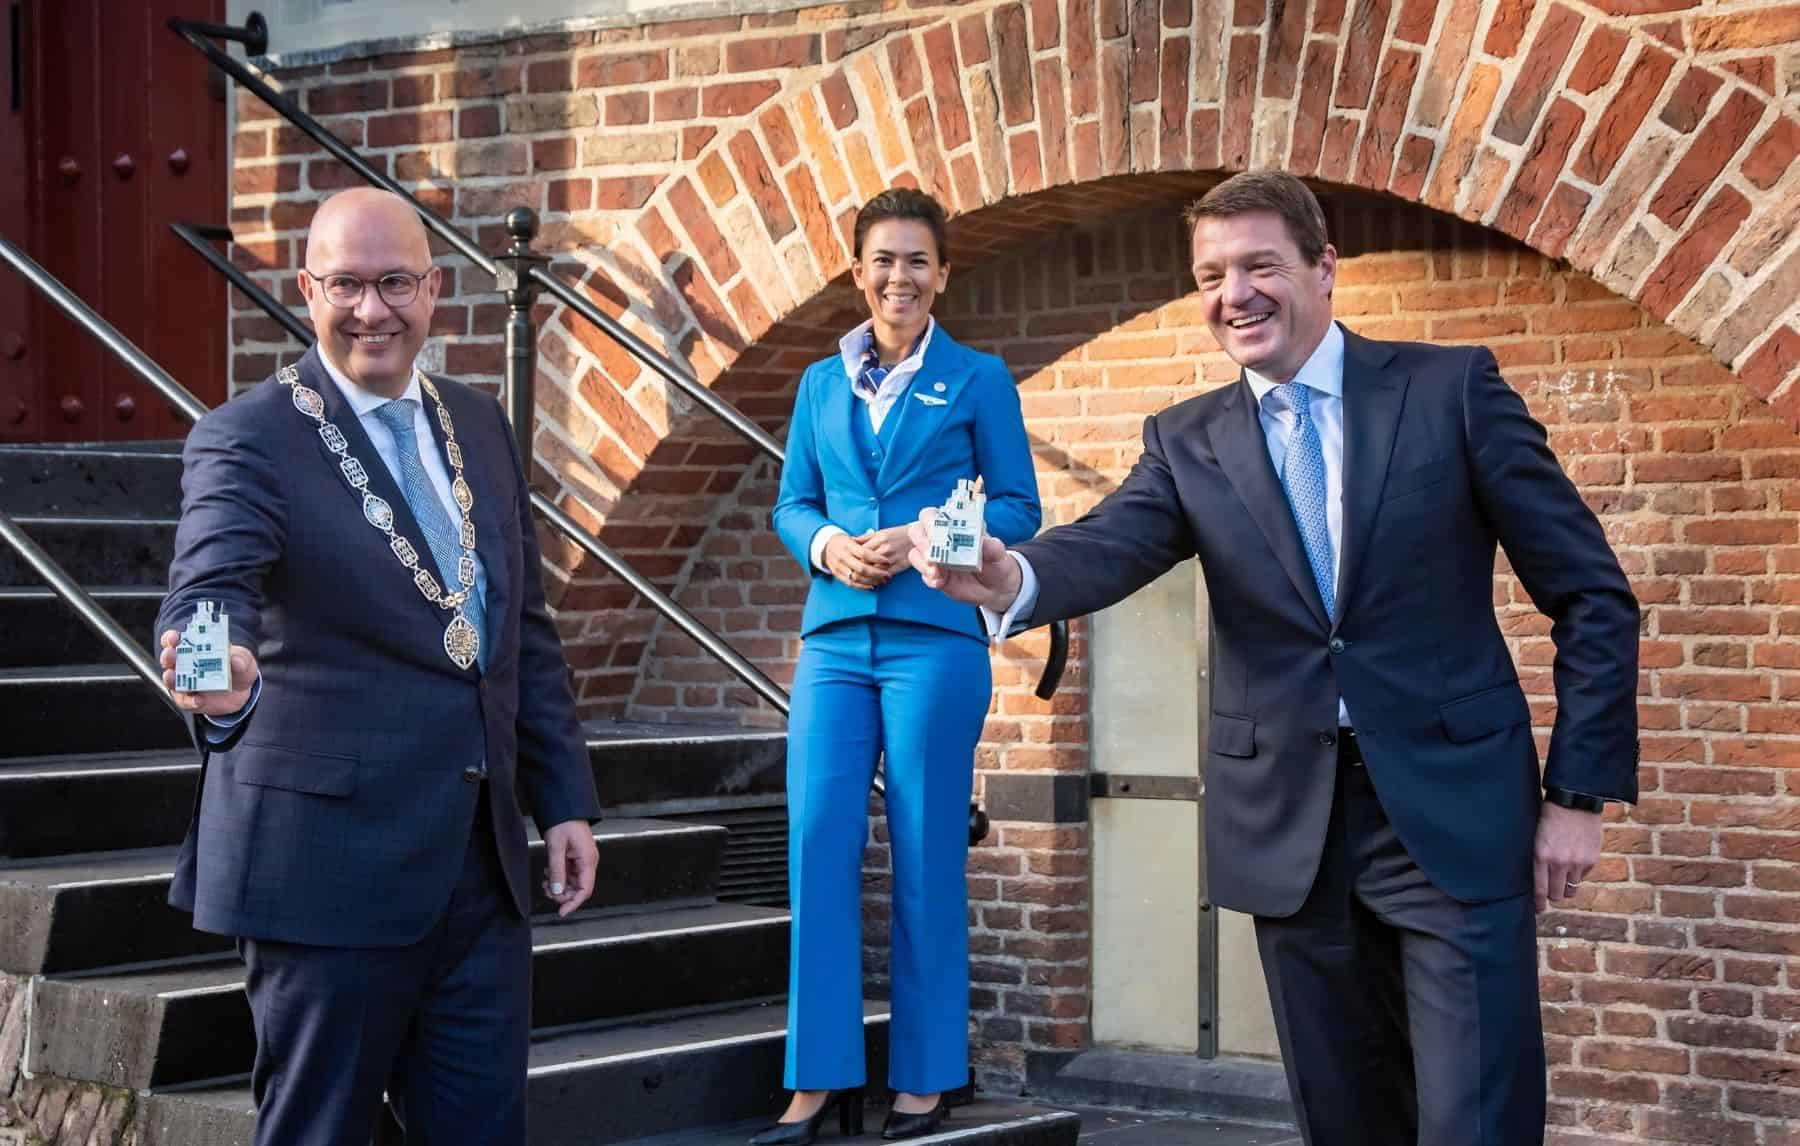 Mayor of 's-Hertogenbosch Jack Mikkers receives the 101st KLM miniature house from KLM president & CEO Pieter Elbers